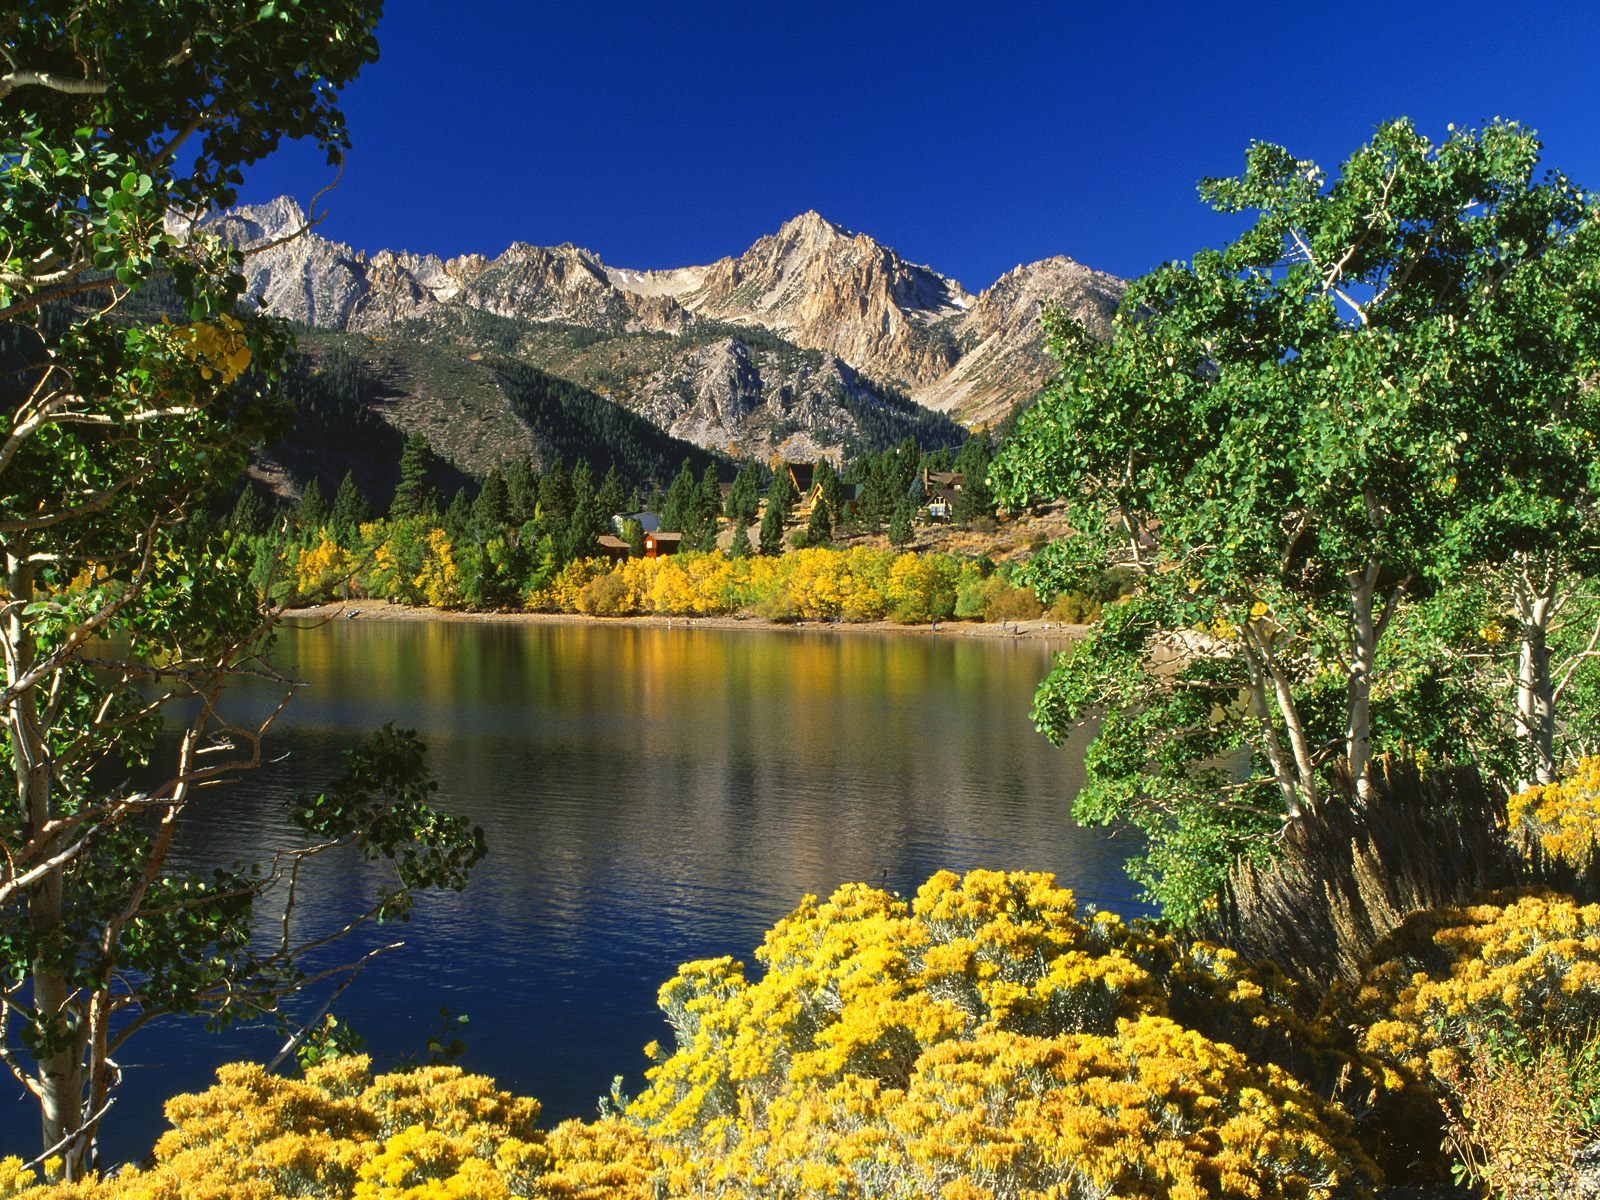 Wallpaper of california nature toiyabe national forest